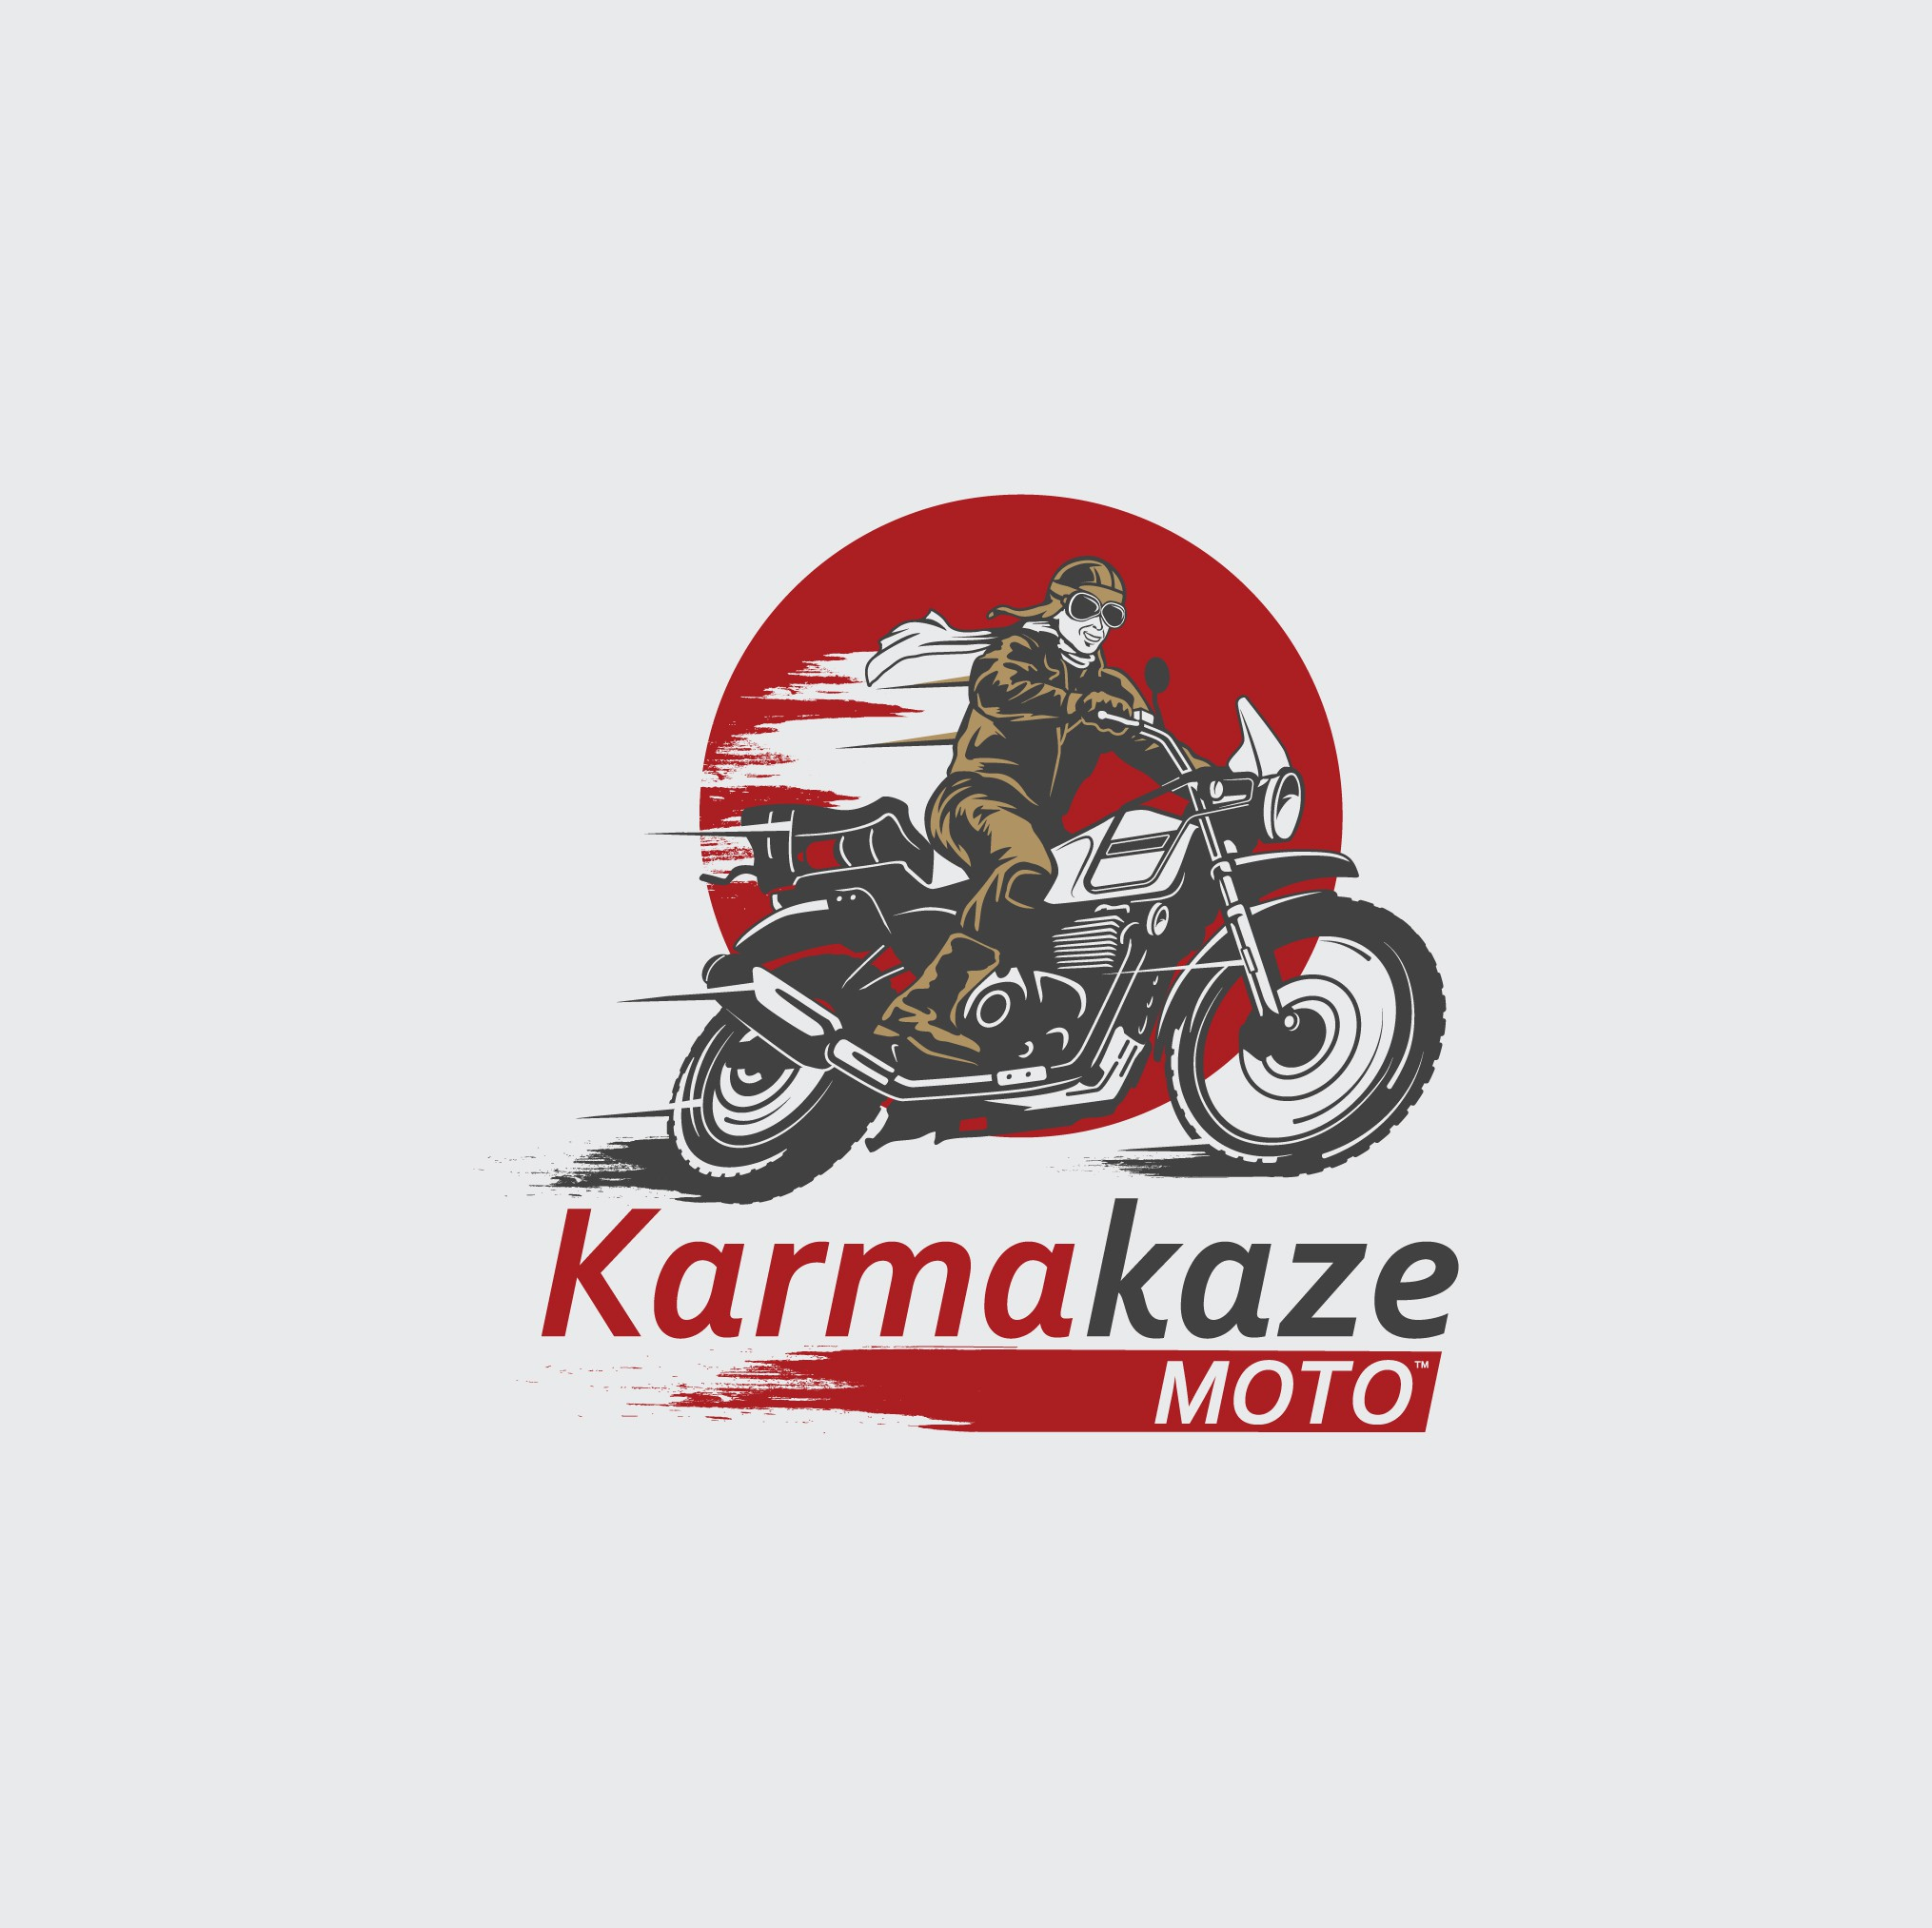 Motorcycle Rider with Vintage Appeal: Karmakaze Moto